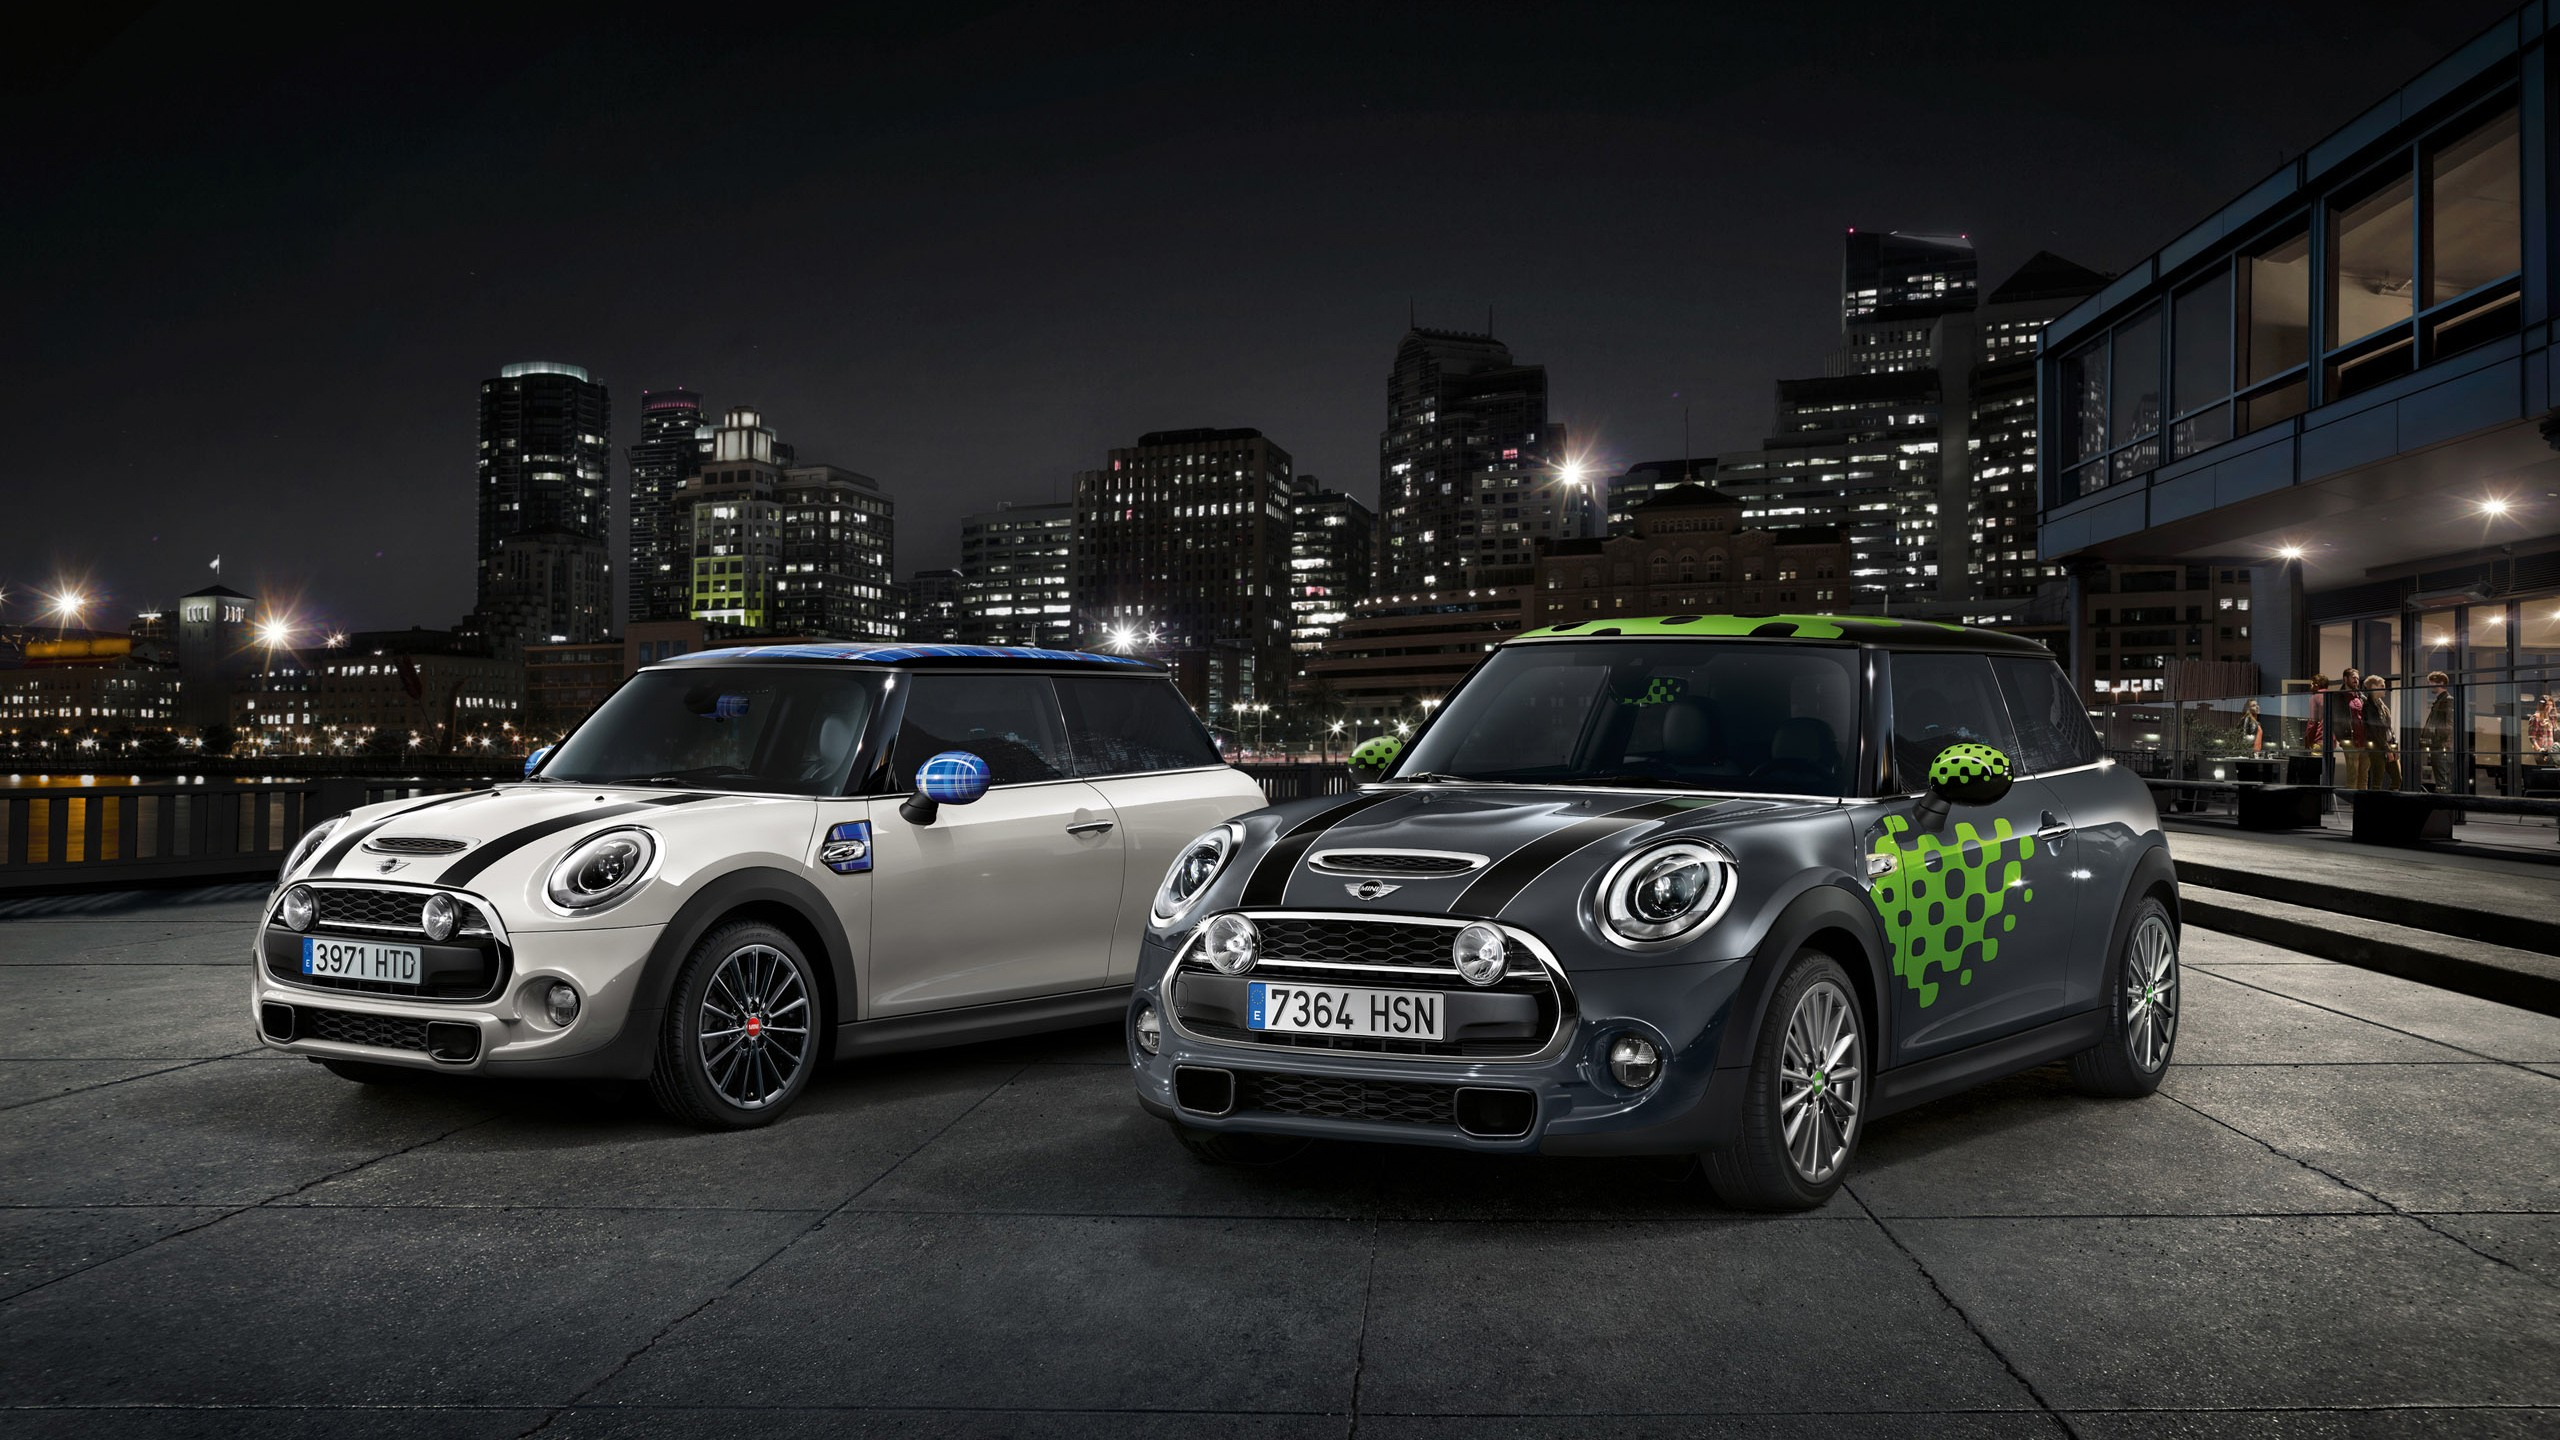 2014 Mini Cooper Accessories Wallpaper Hd Car Wallpapers